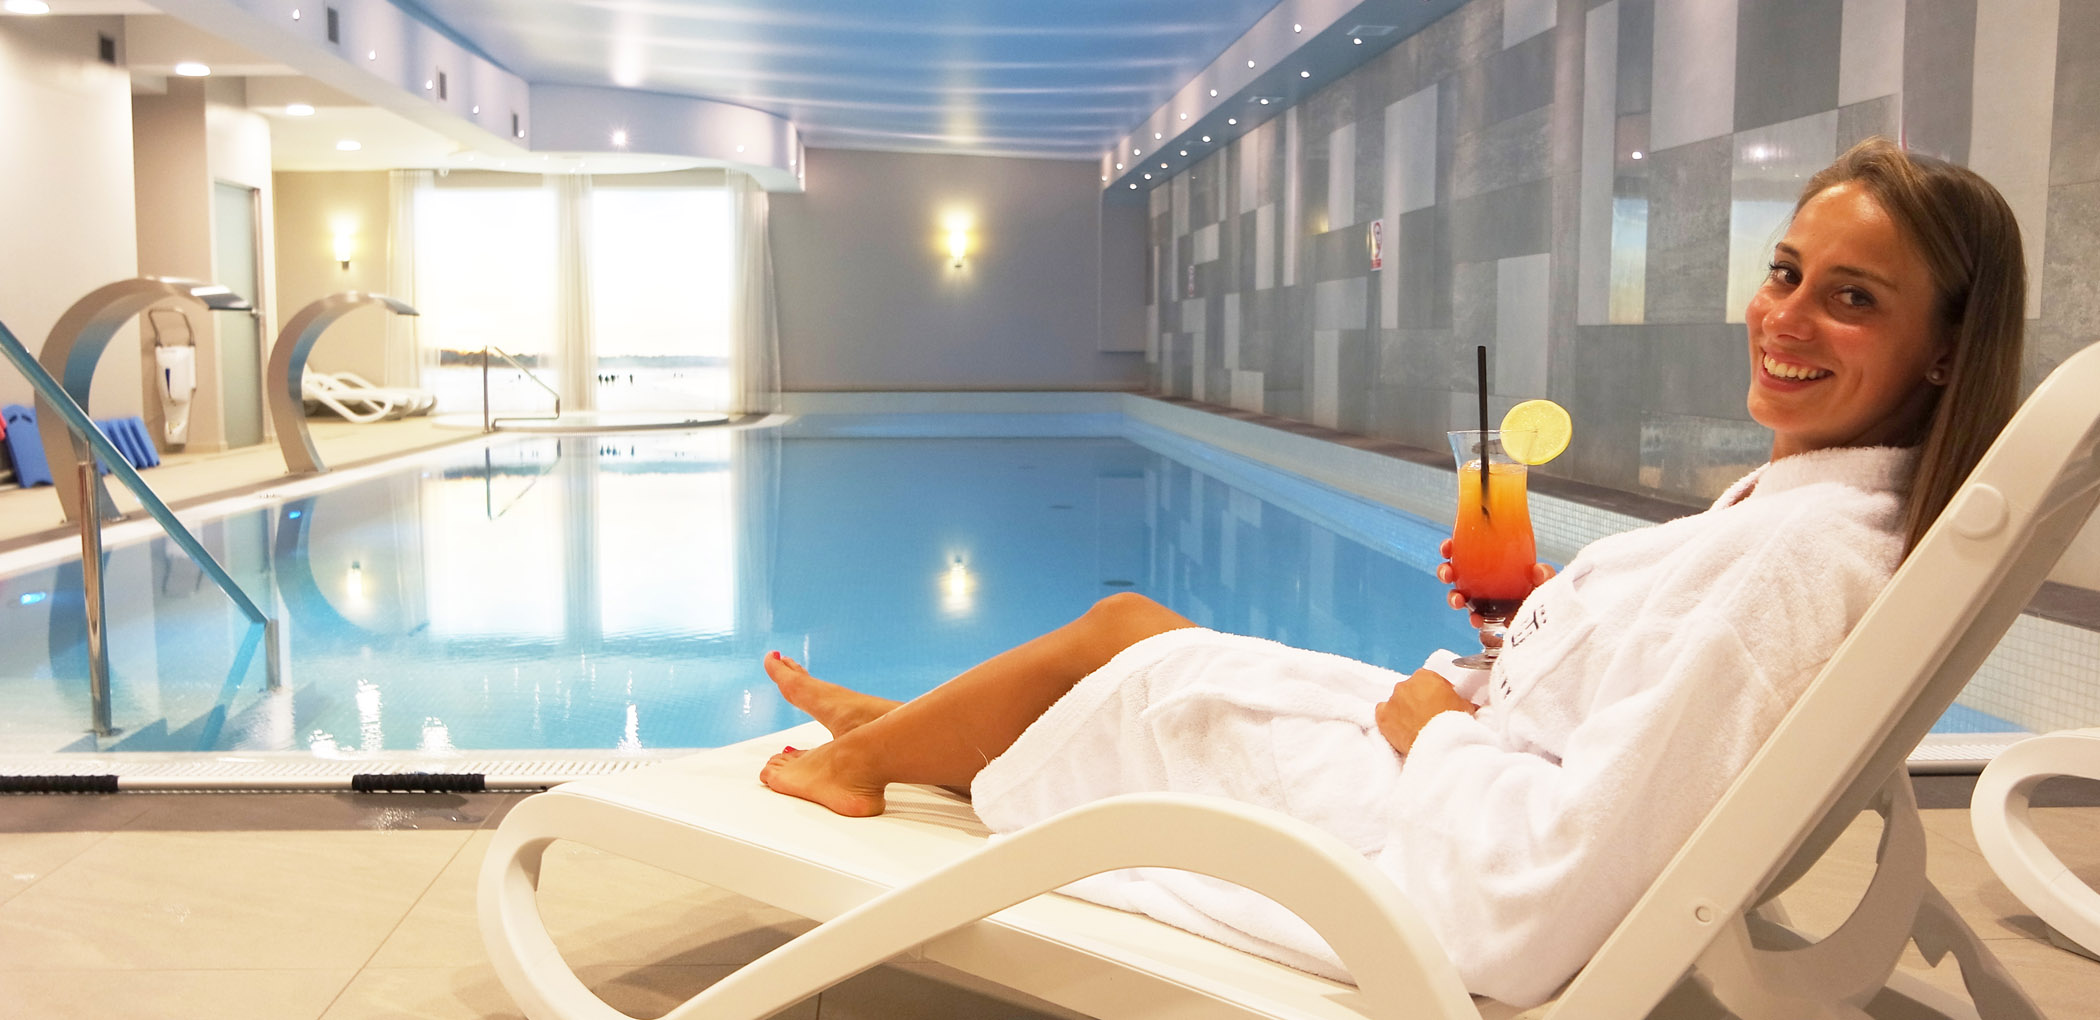 Medical Spas And Pregnancy: Offering The Very Best Treatments